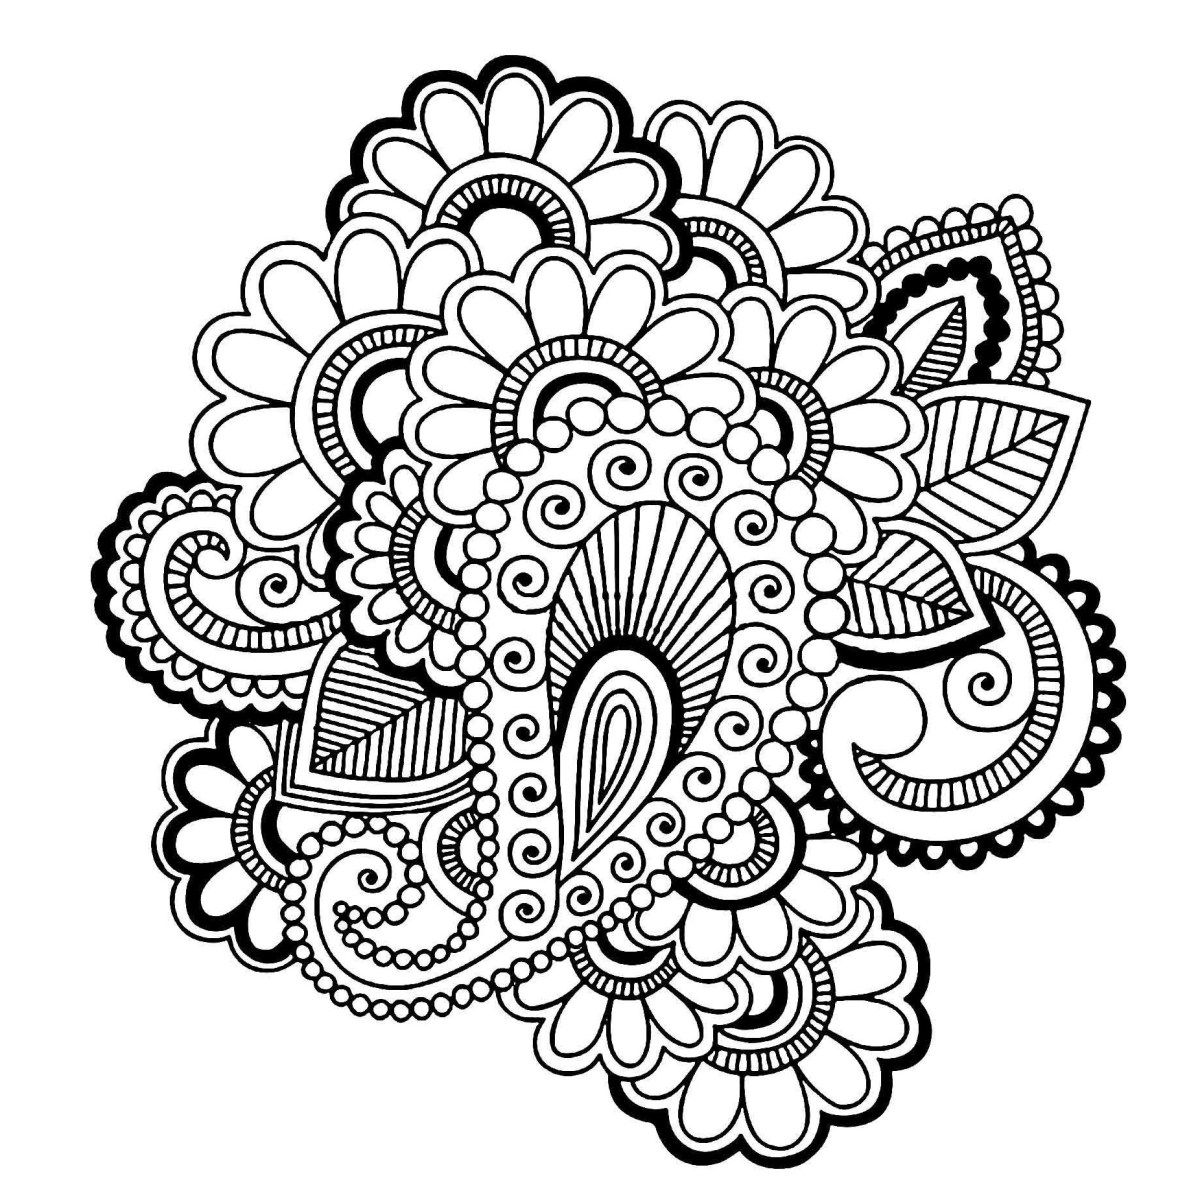 1200x1200 Easy To Draw Black And White Paisley Design